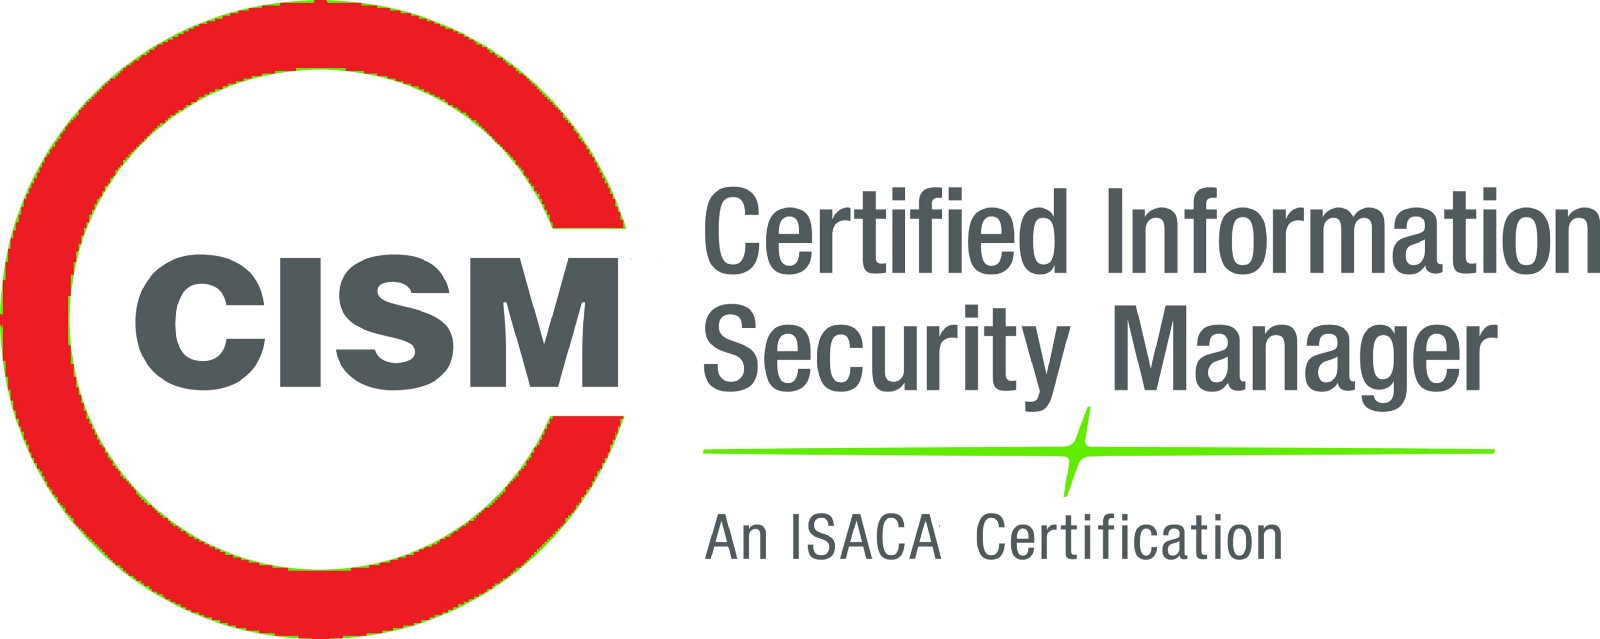 Cism Certification Overview Career Path Eligibility And Other